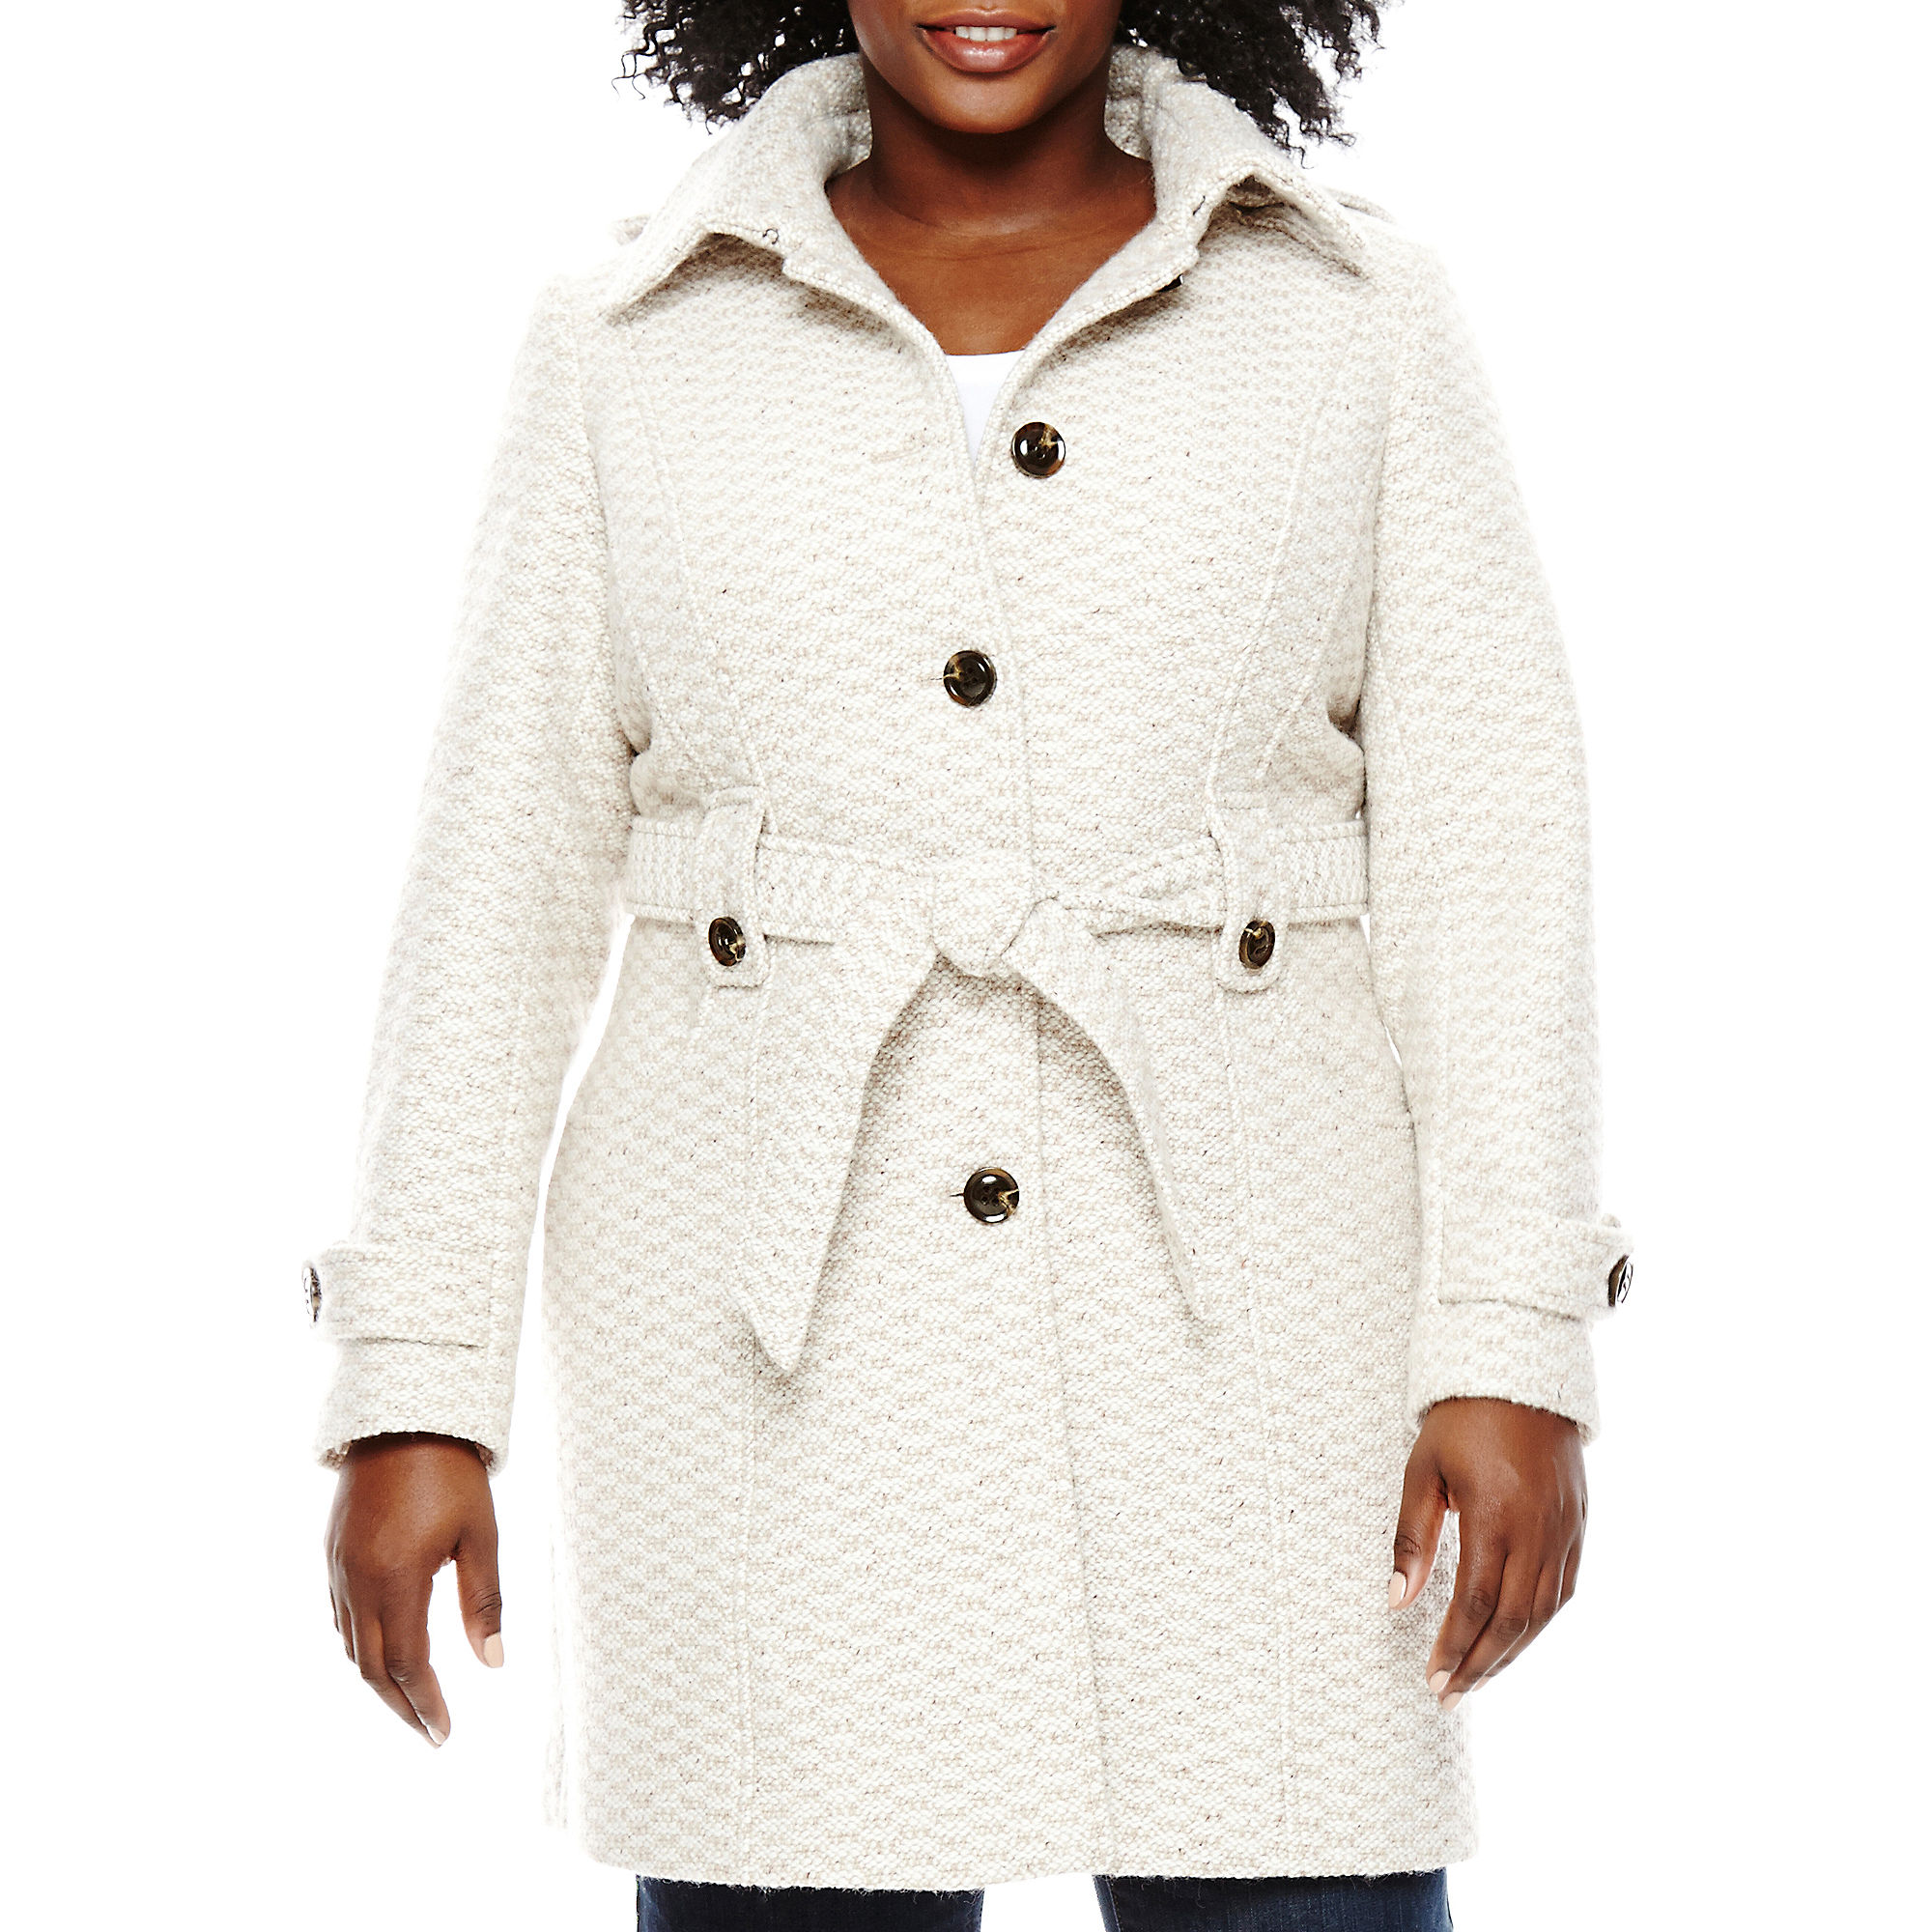 Liz Claiborne Single-Breasted Belted Wool-Blend Jacket - Plus